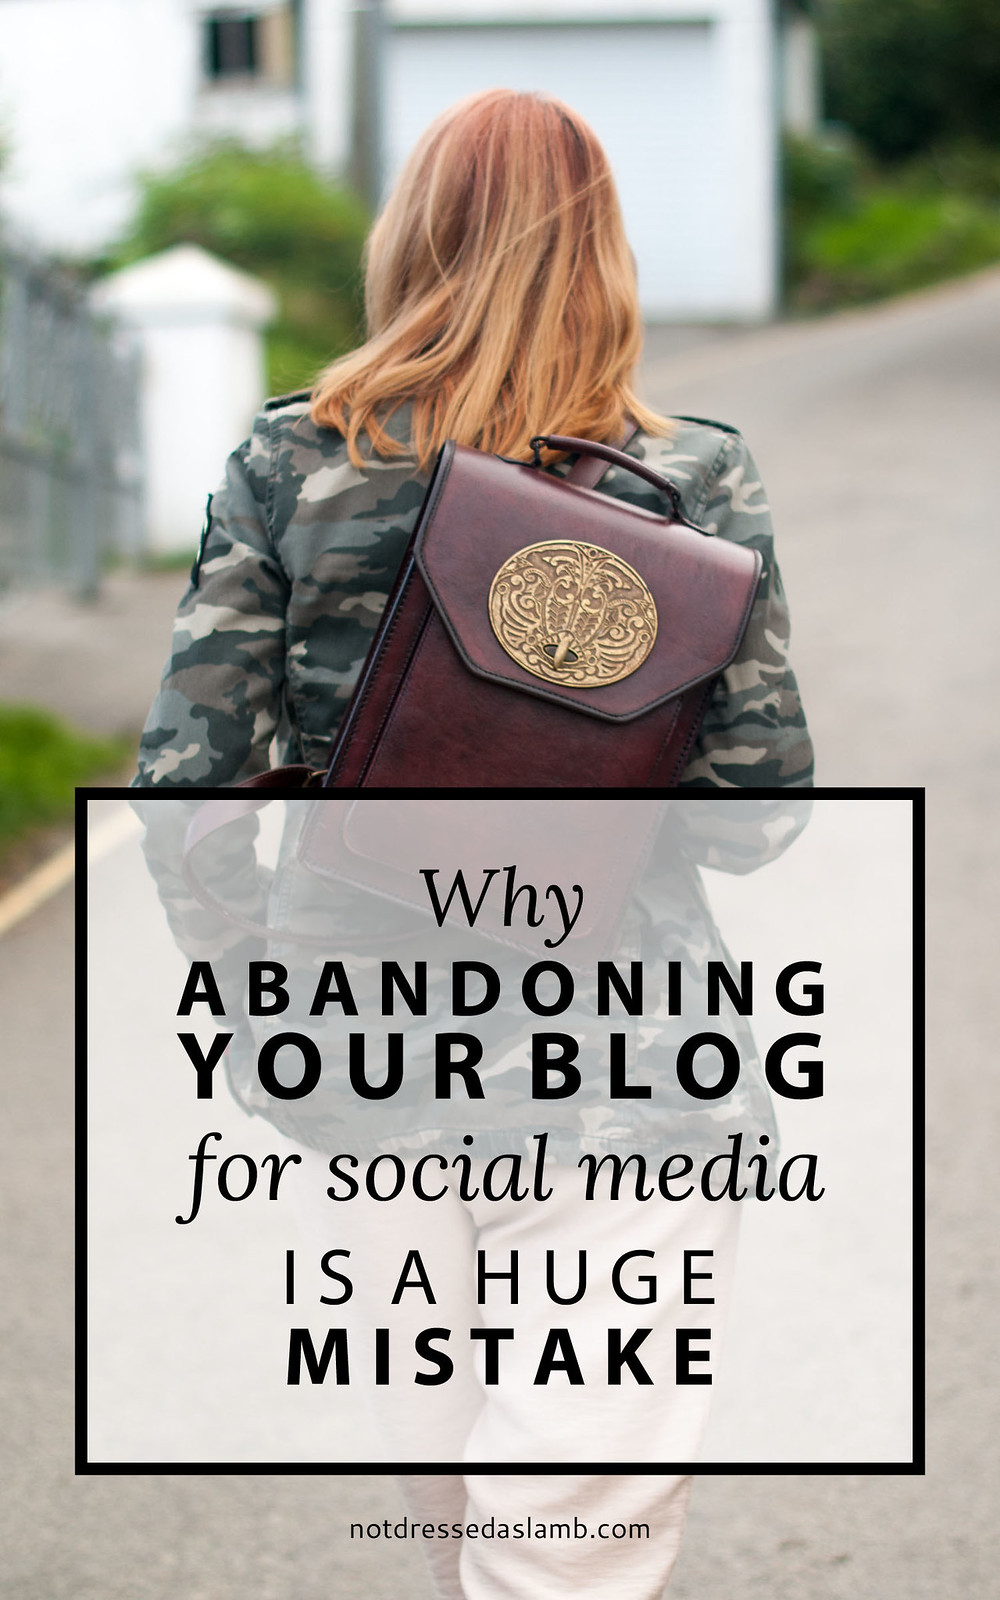 Why You Should Not Abandon Your Blog for Social Media - it's a Huge Mistake | Blogging Tips 101